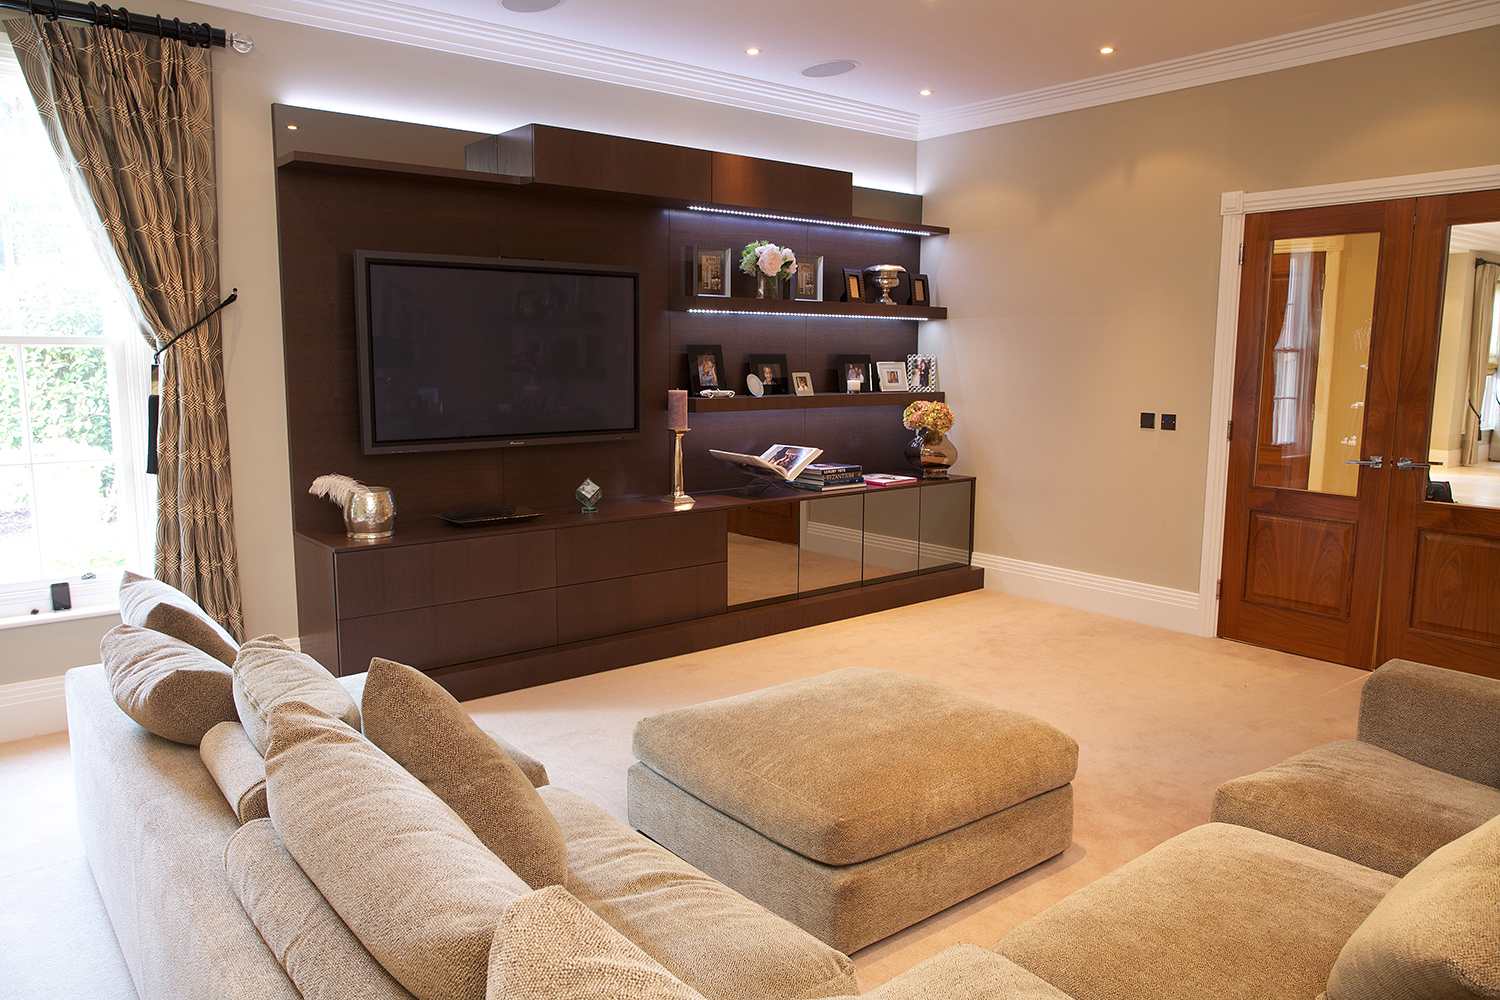 Bespoke Media / AV Cabinet - Bespoke Furniture Hampshire, UK